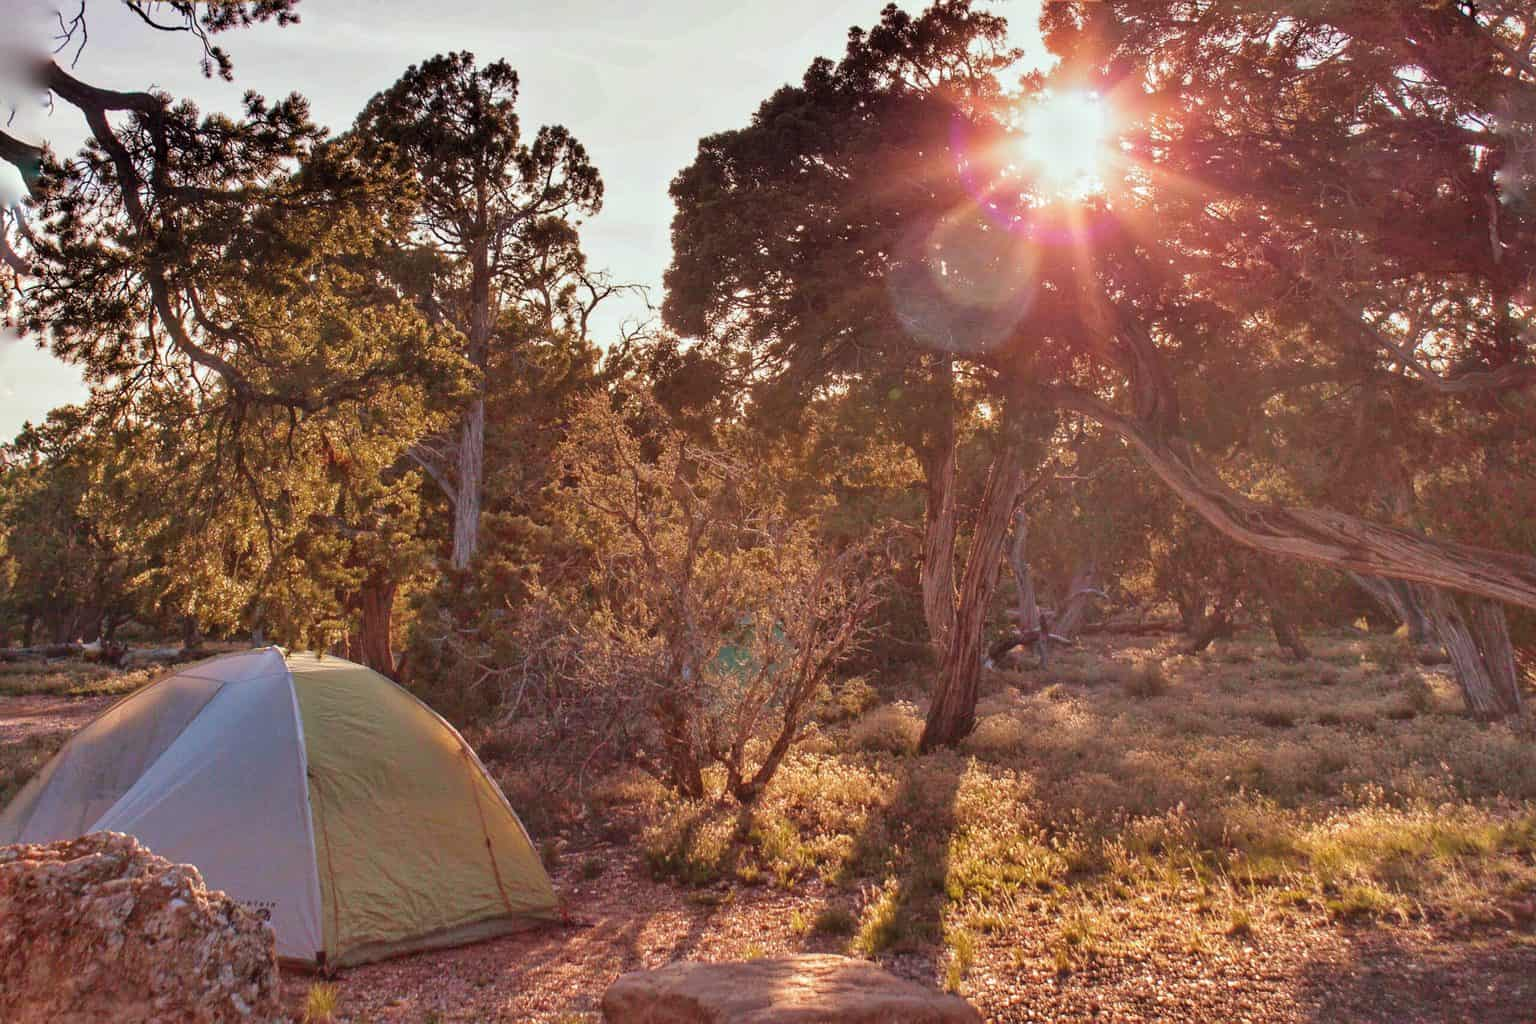 A tent in the woods while the sun is setting.